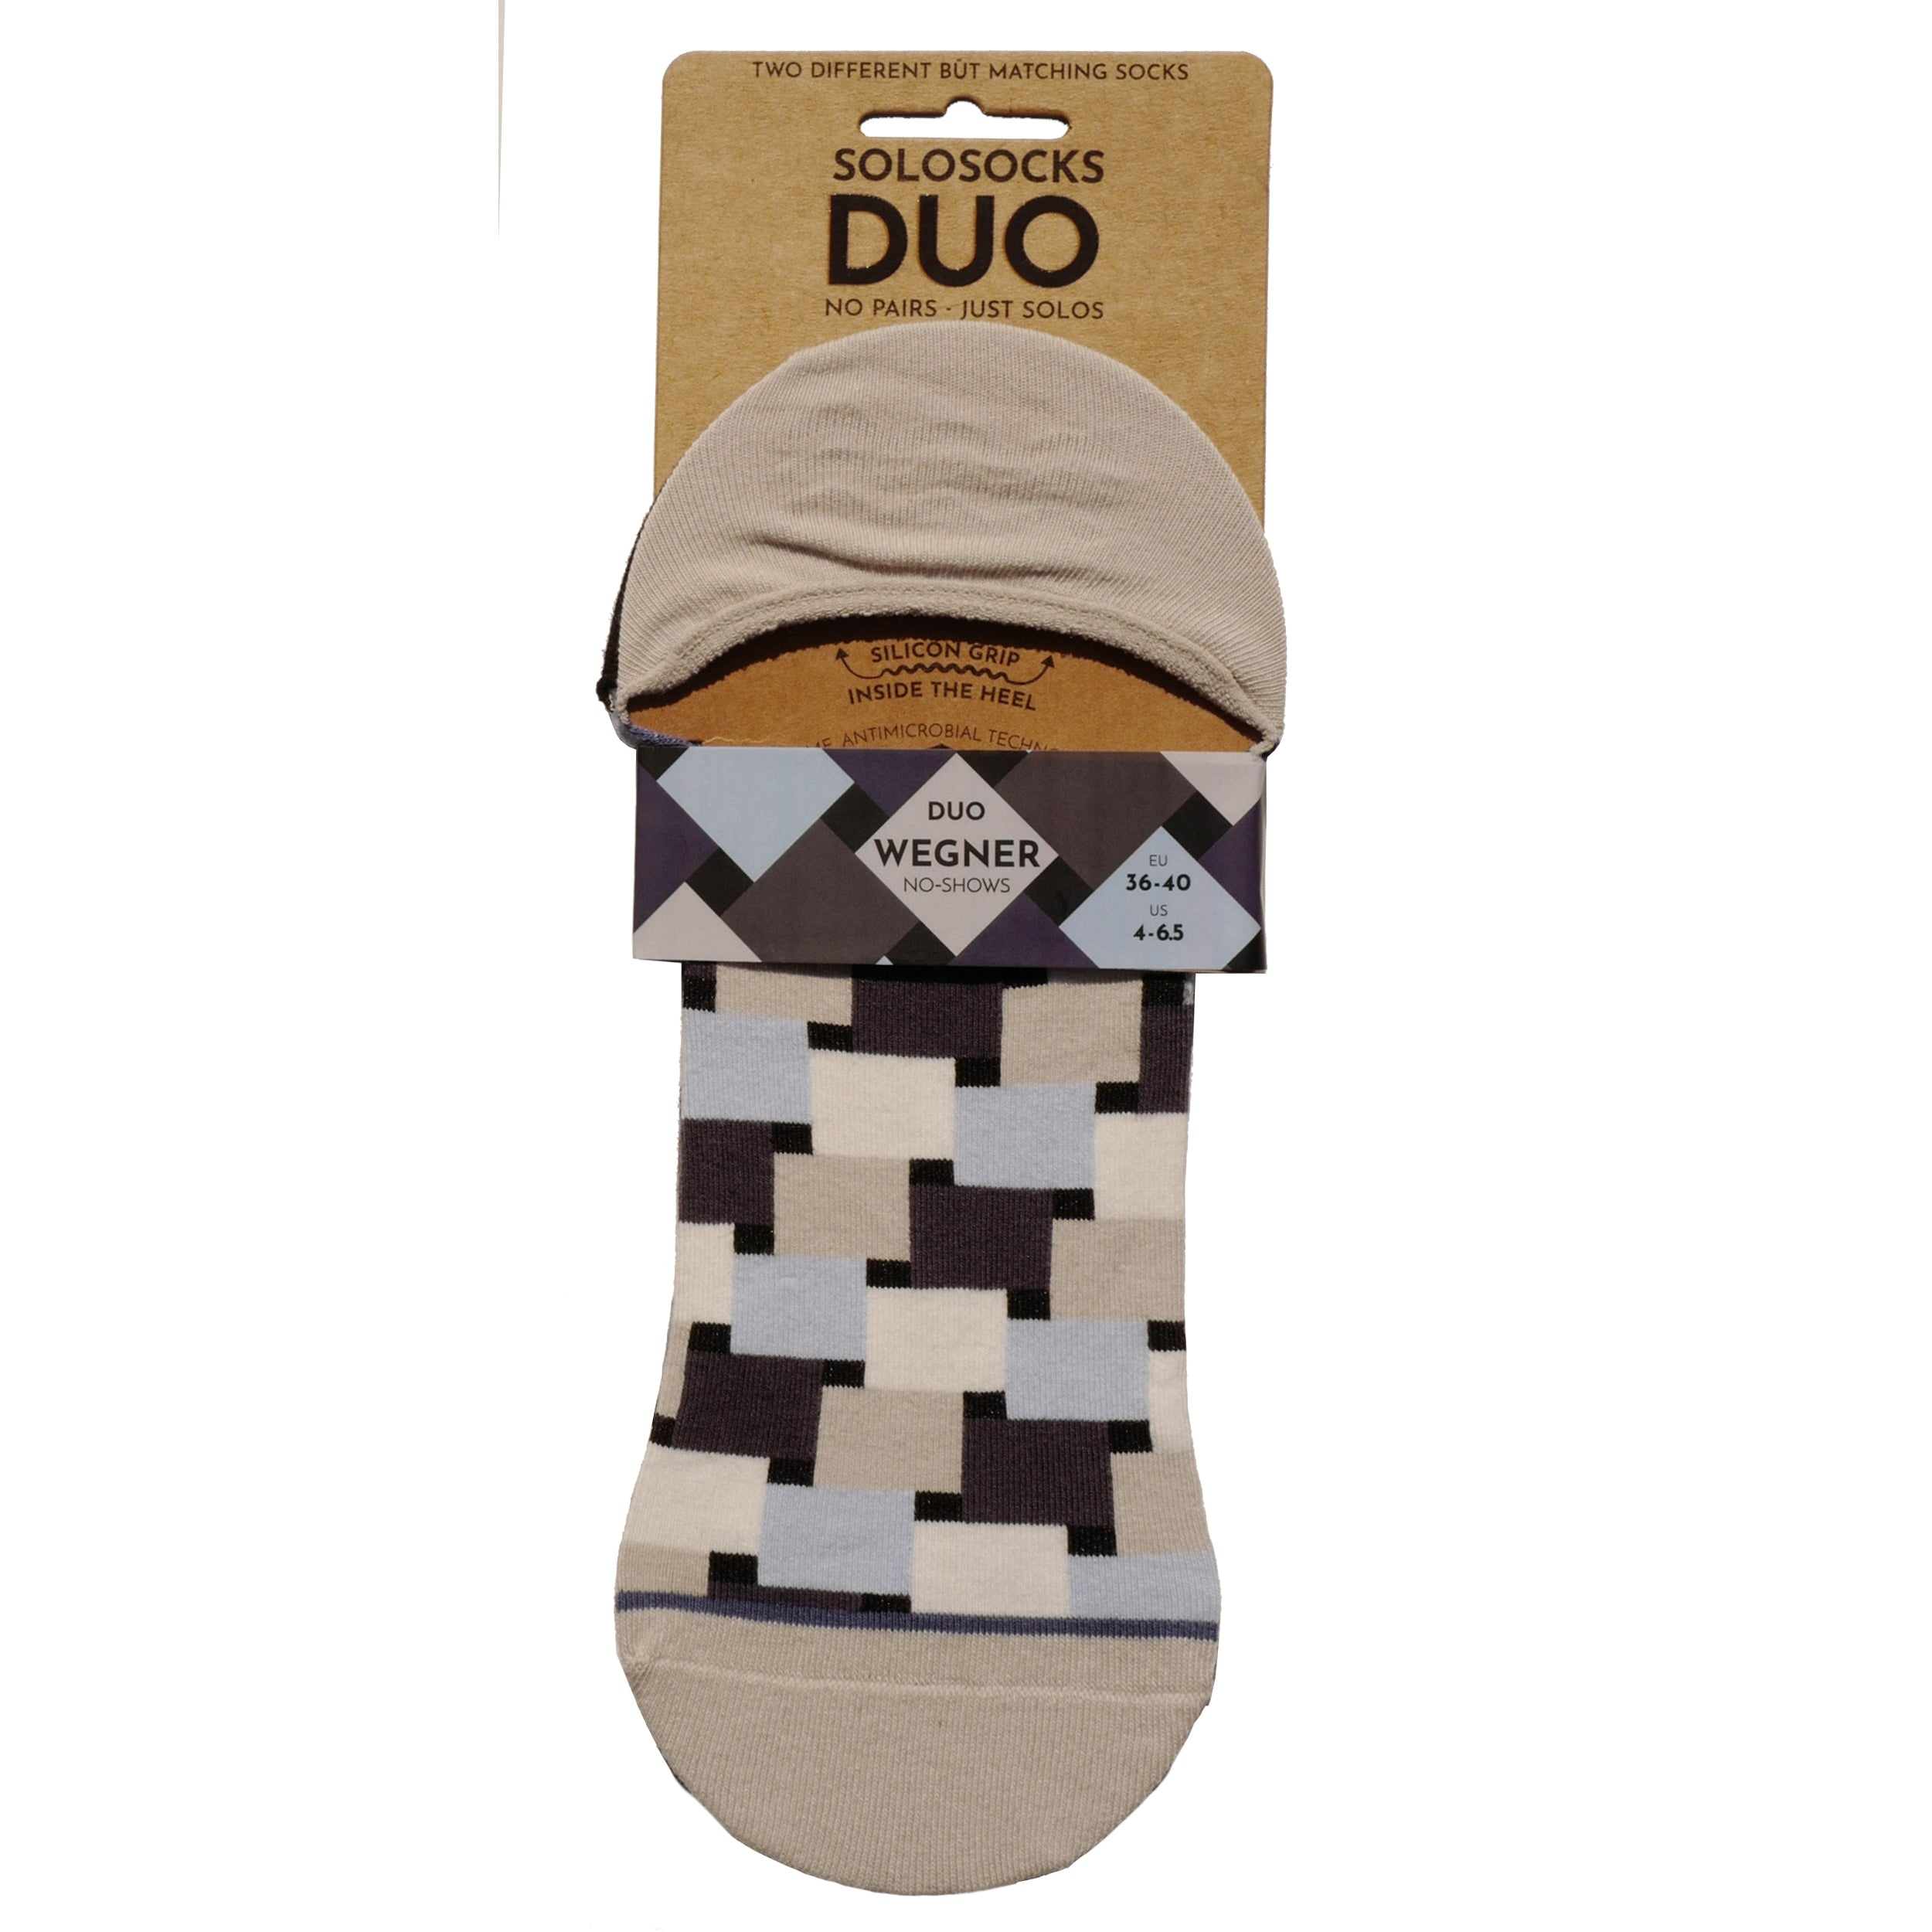 Wegner No-Shows Duo - SOLOSOCKS